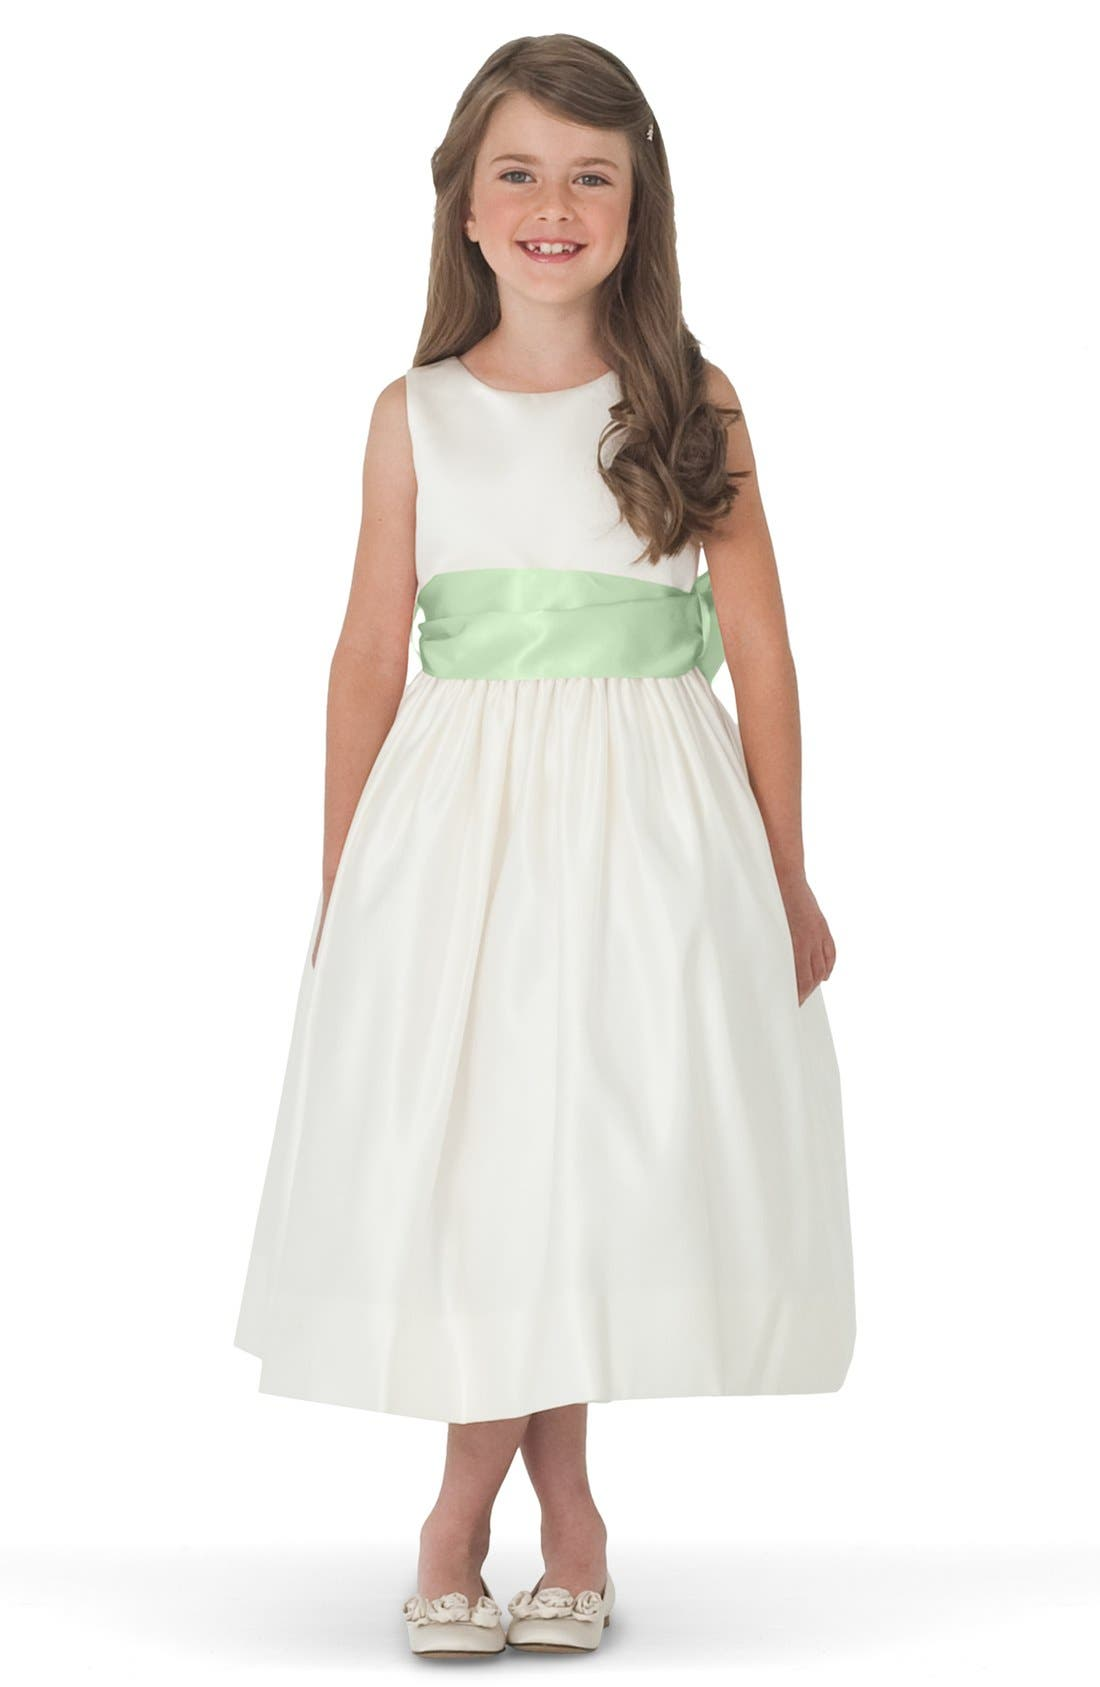 US ANGELS Sleeveless Satin Dress with Contrast Sash